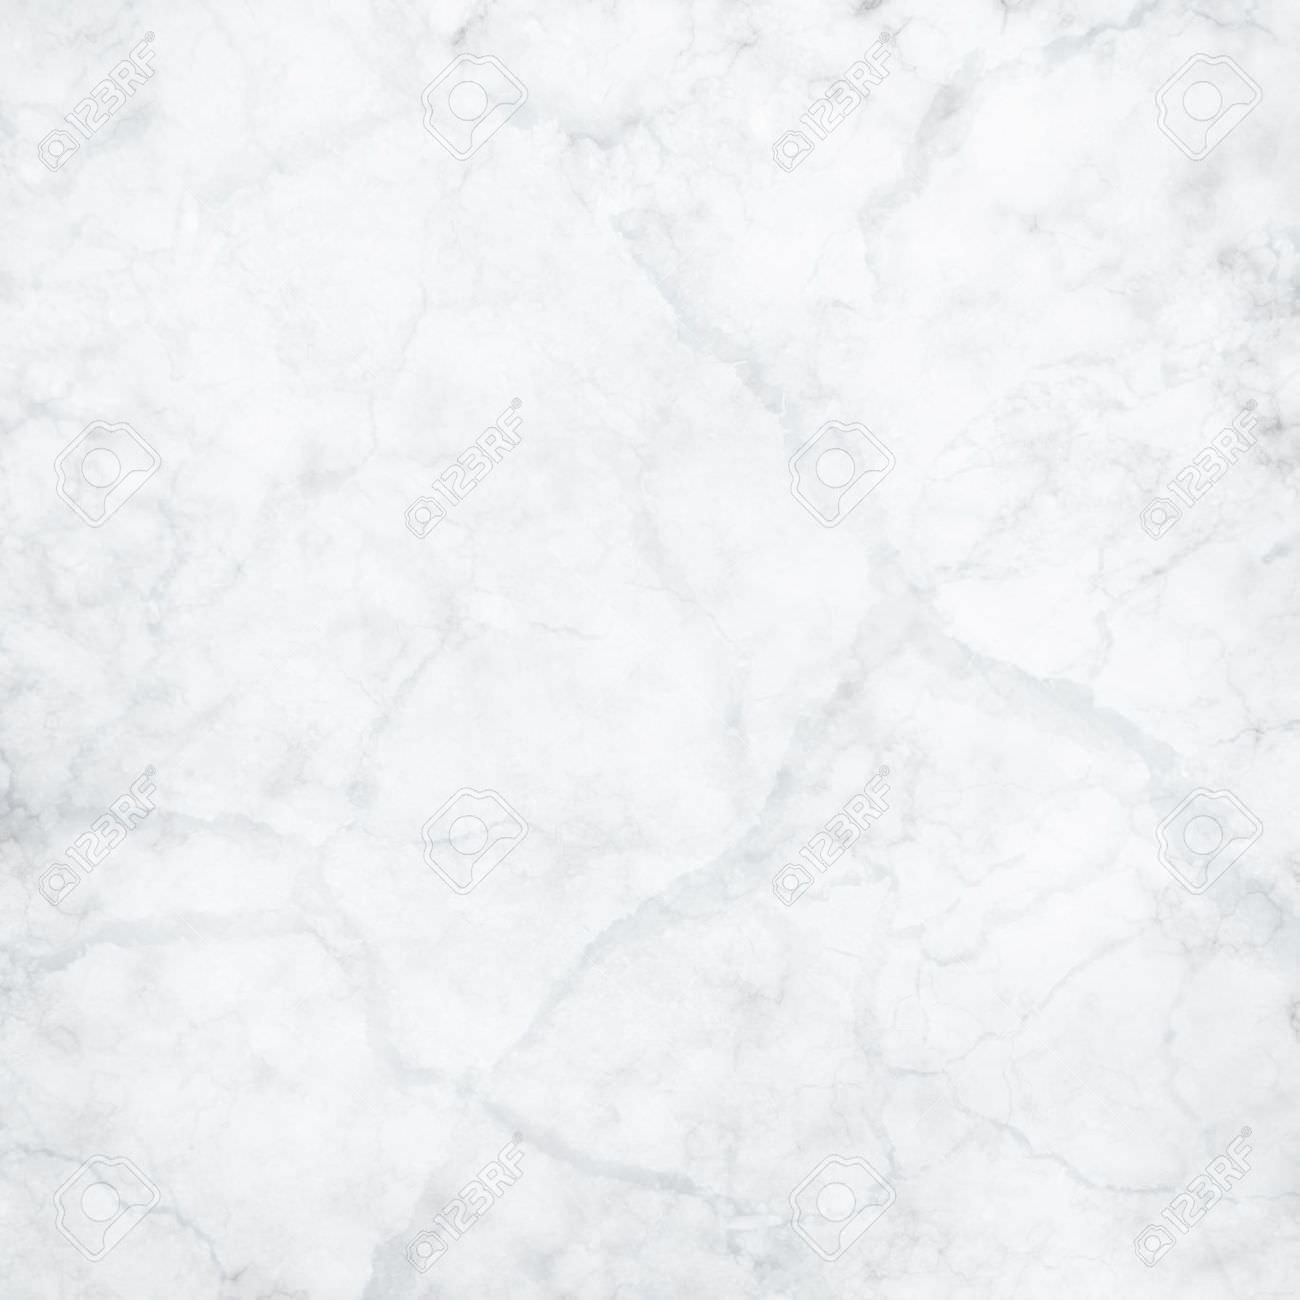 20 Amazing Marble Patterns Textures